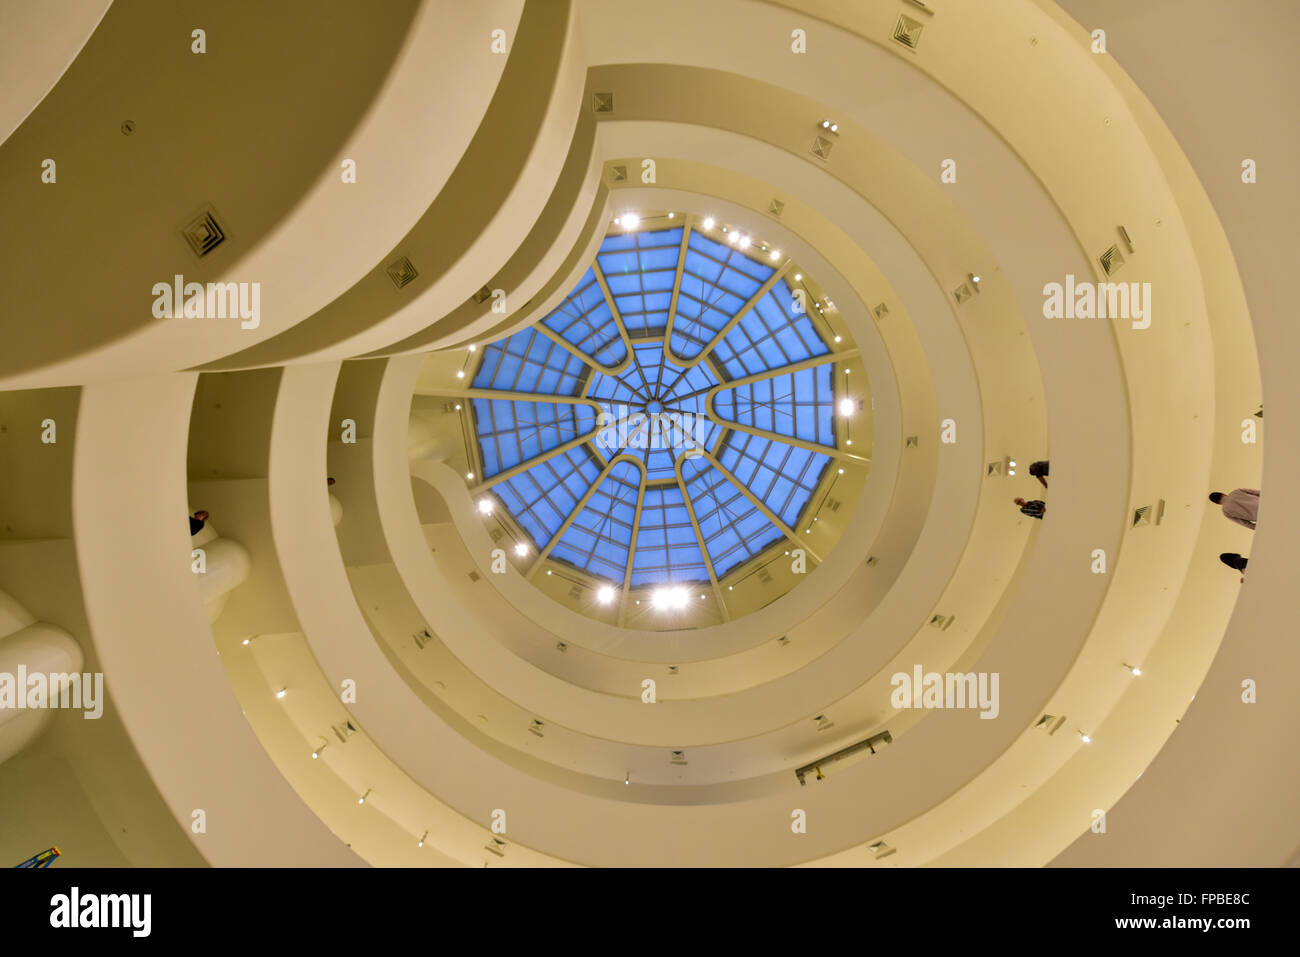 New York City - January 31, 2016: Interior of the famous Solomon R. Guggenheim Museum of modern and contemporary - Stock Image